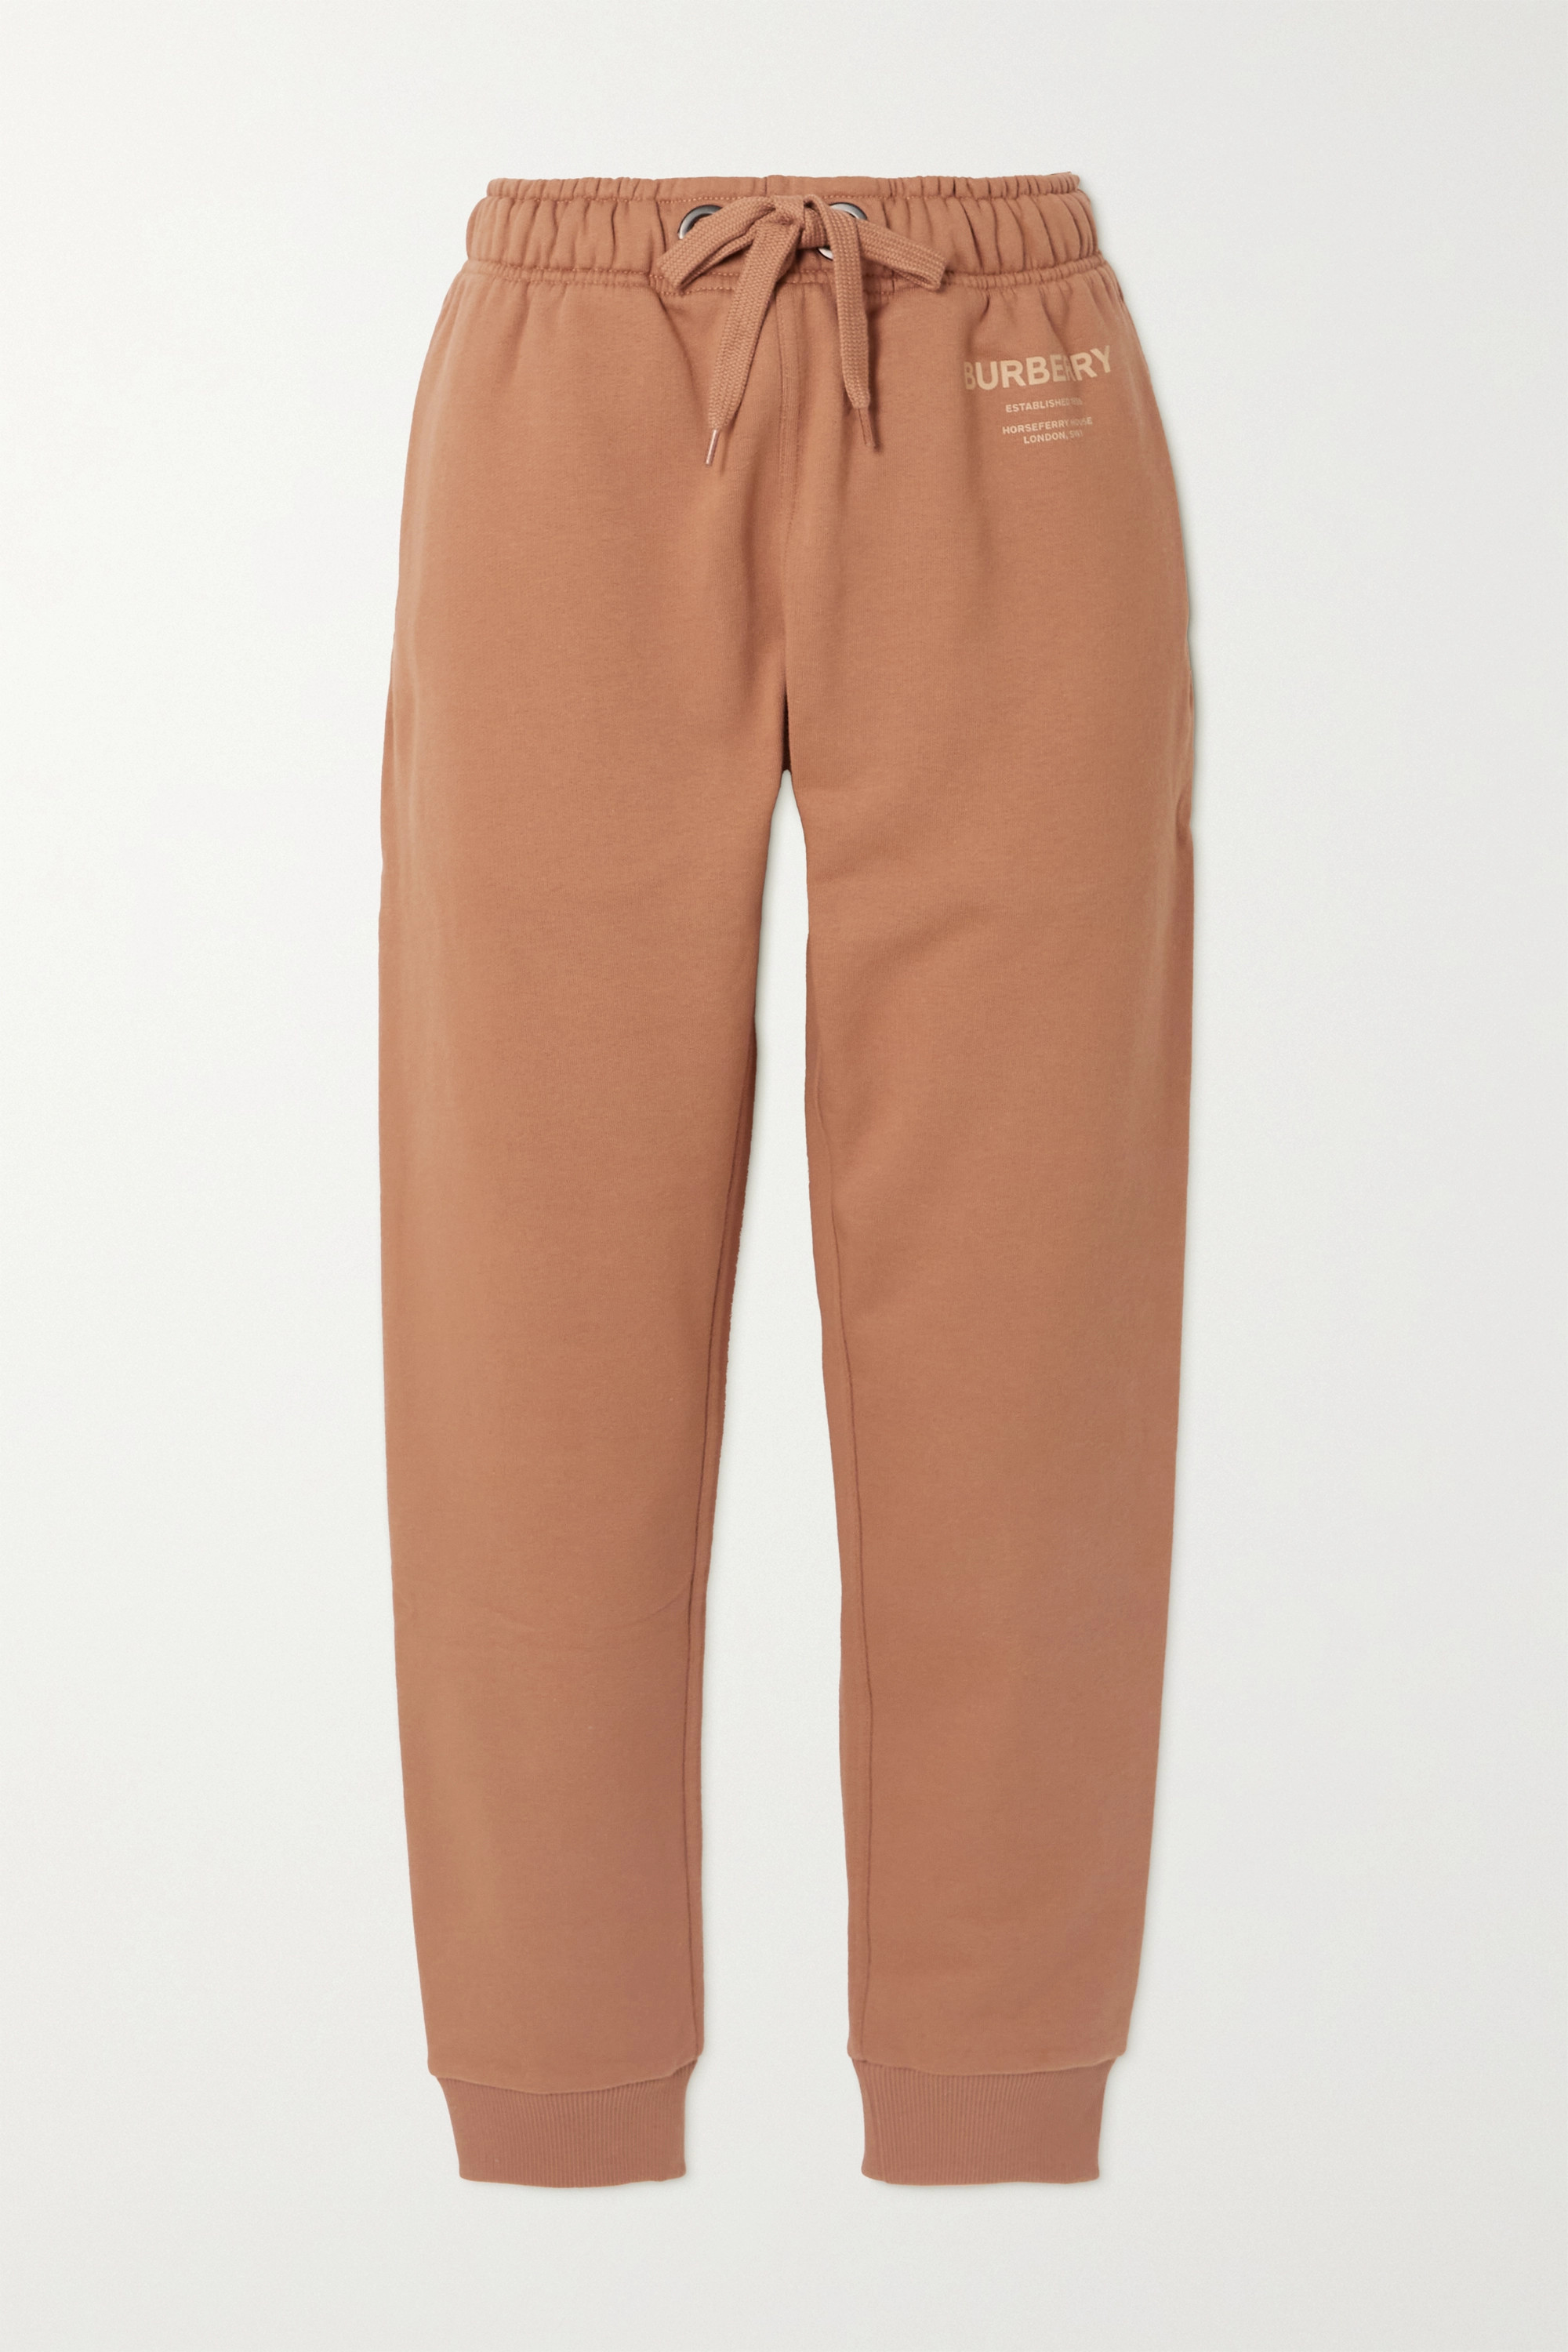 Burberry Esme printed cotton-jersey track pants